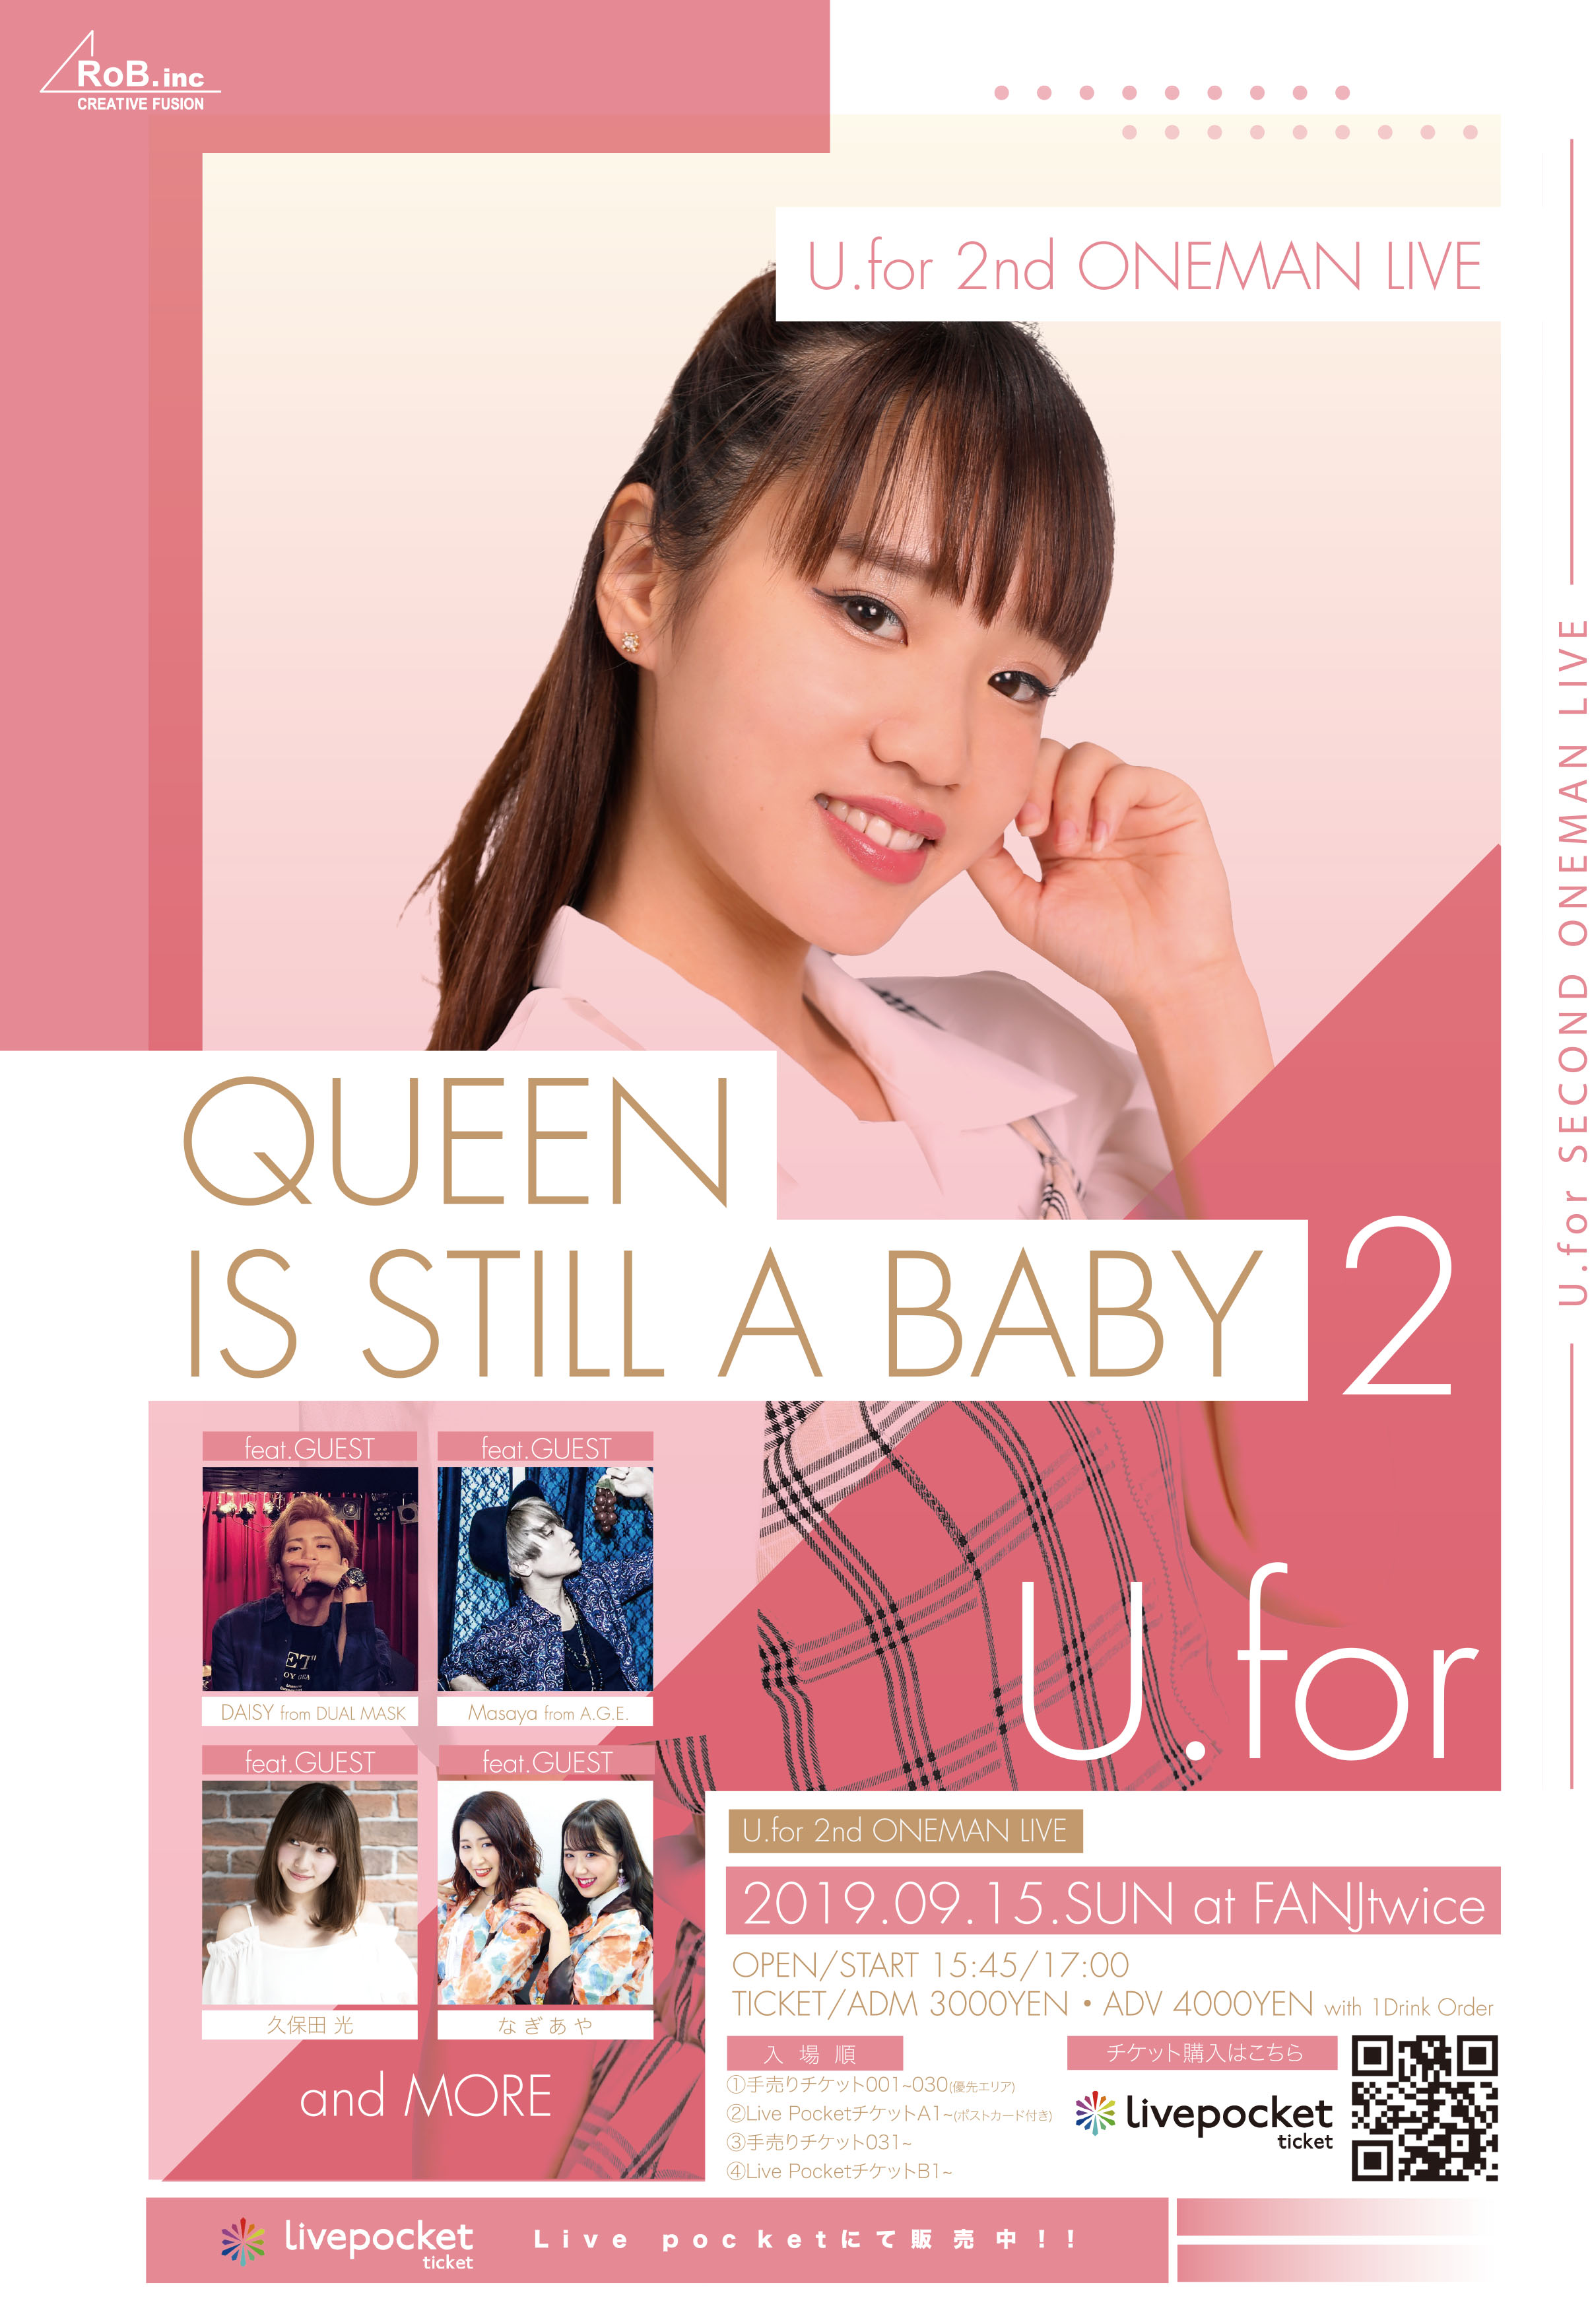 """-U.for 2nd ONEMAN LIVE-""""QUEEN IS STILL A BABY 2"""""""